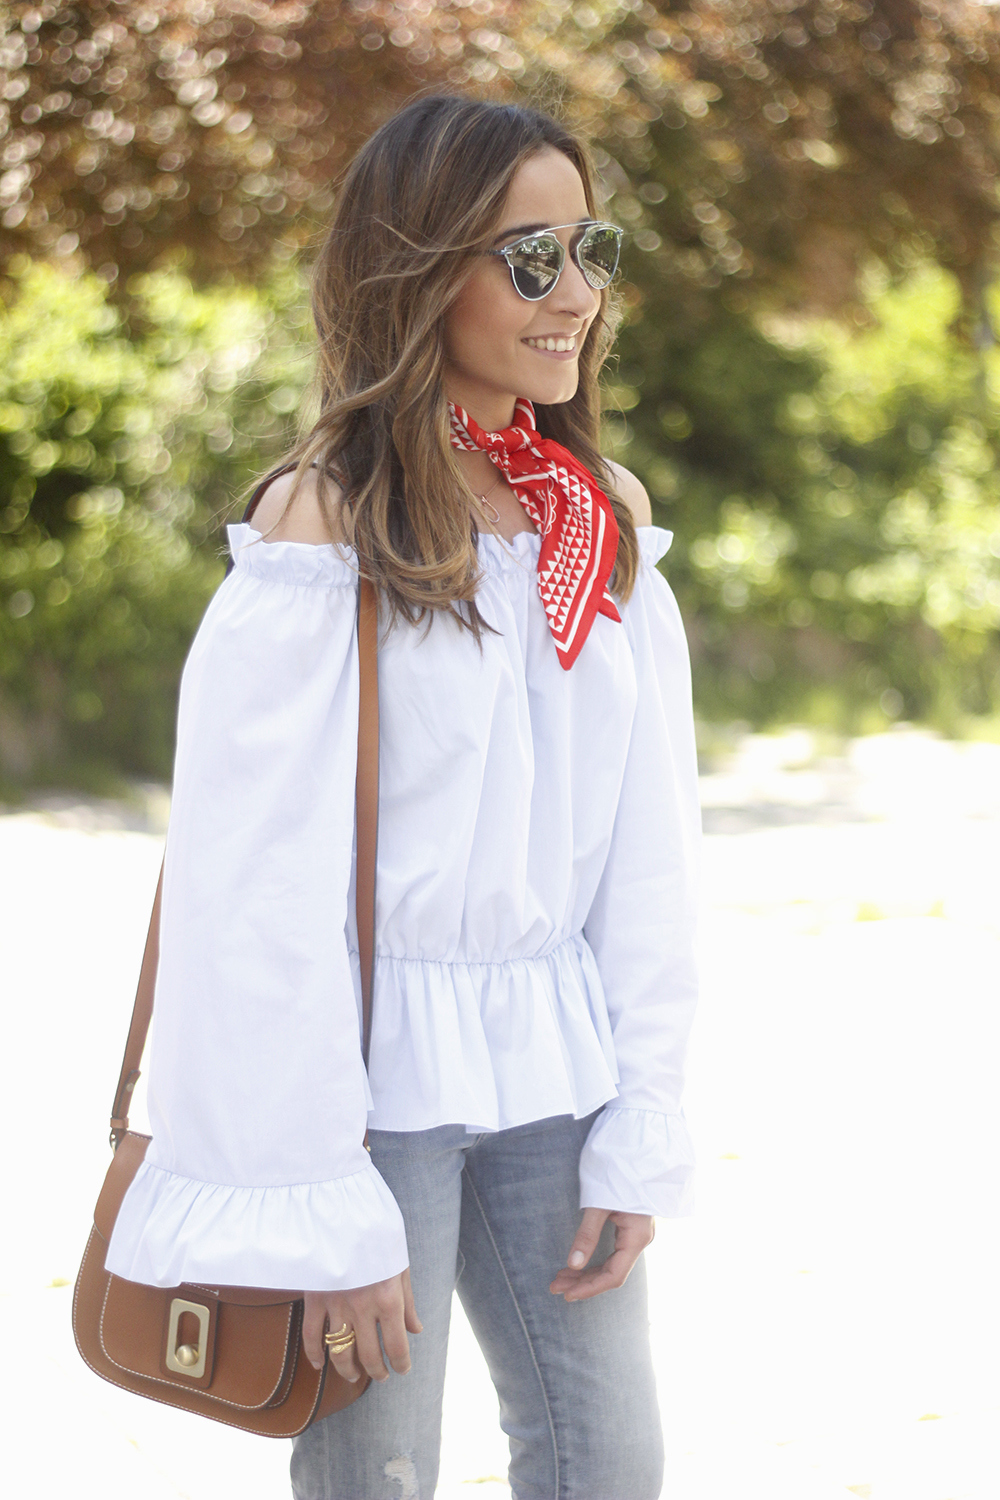 off the shoulders top with bell sleeves red bandana nude heels dior sunglasses spring outfit16